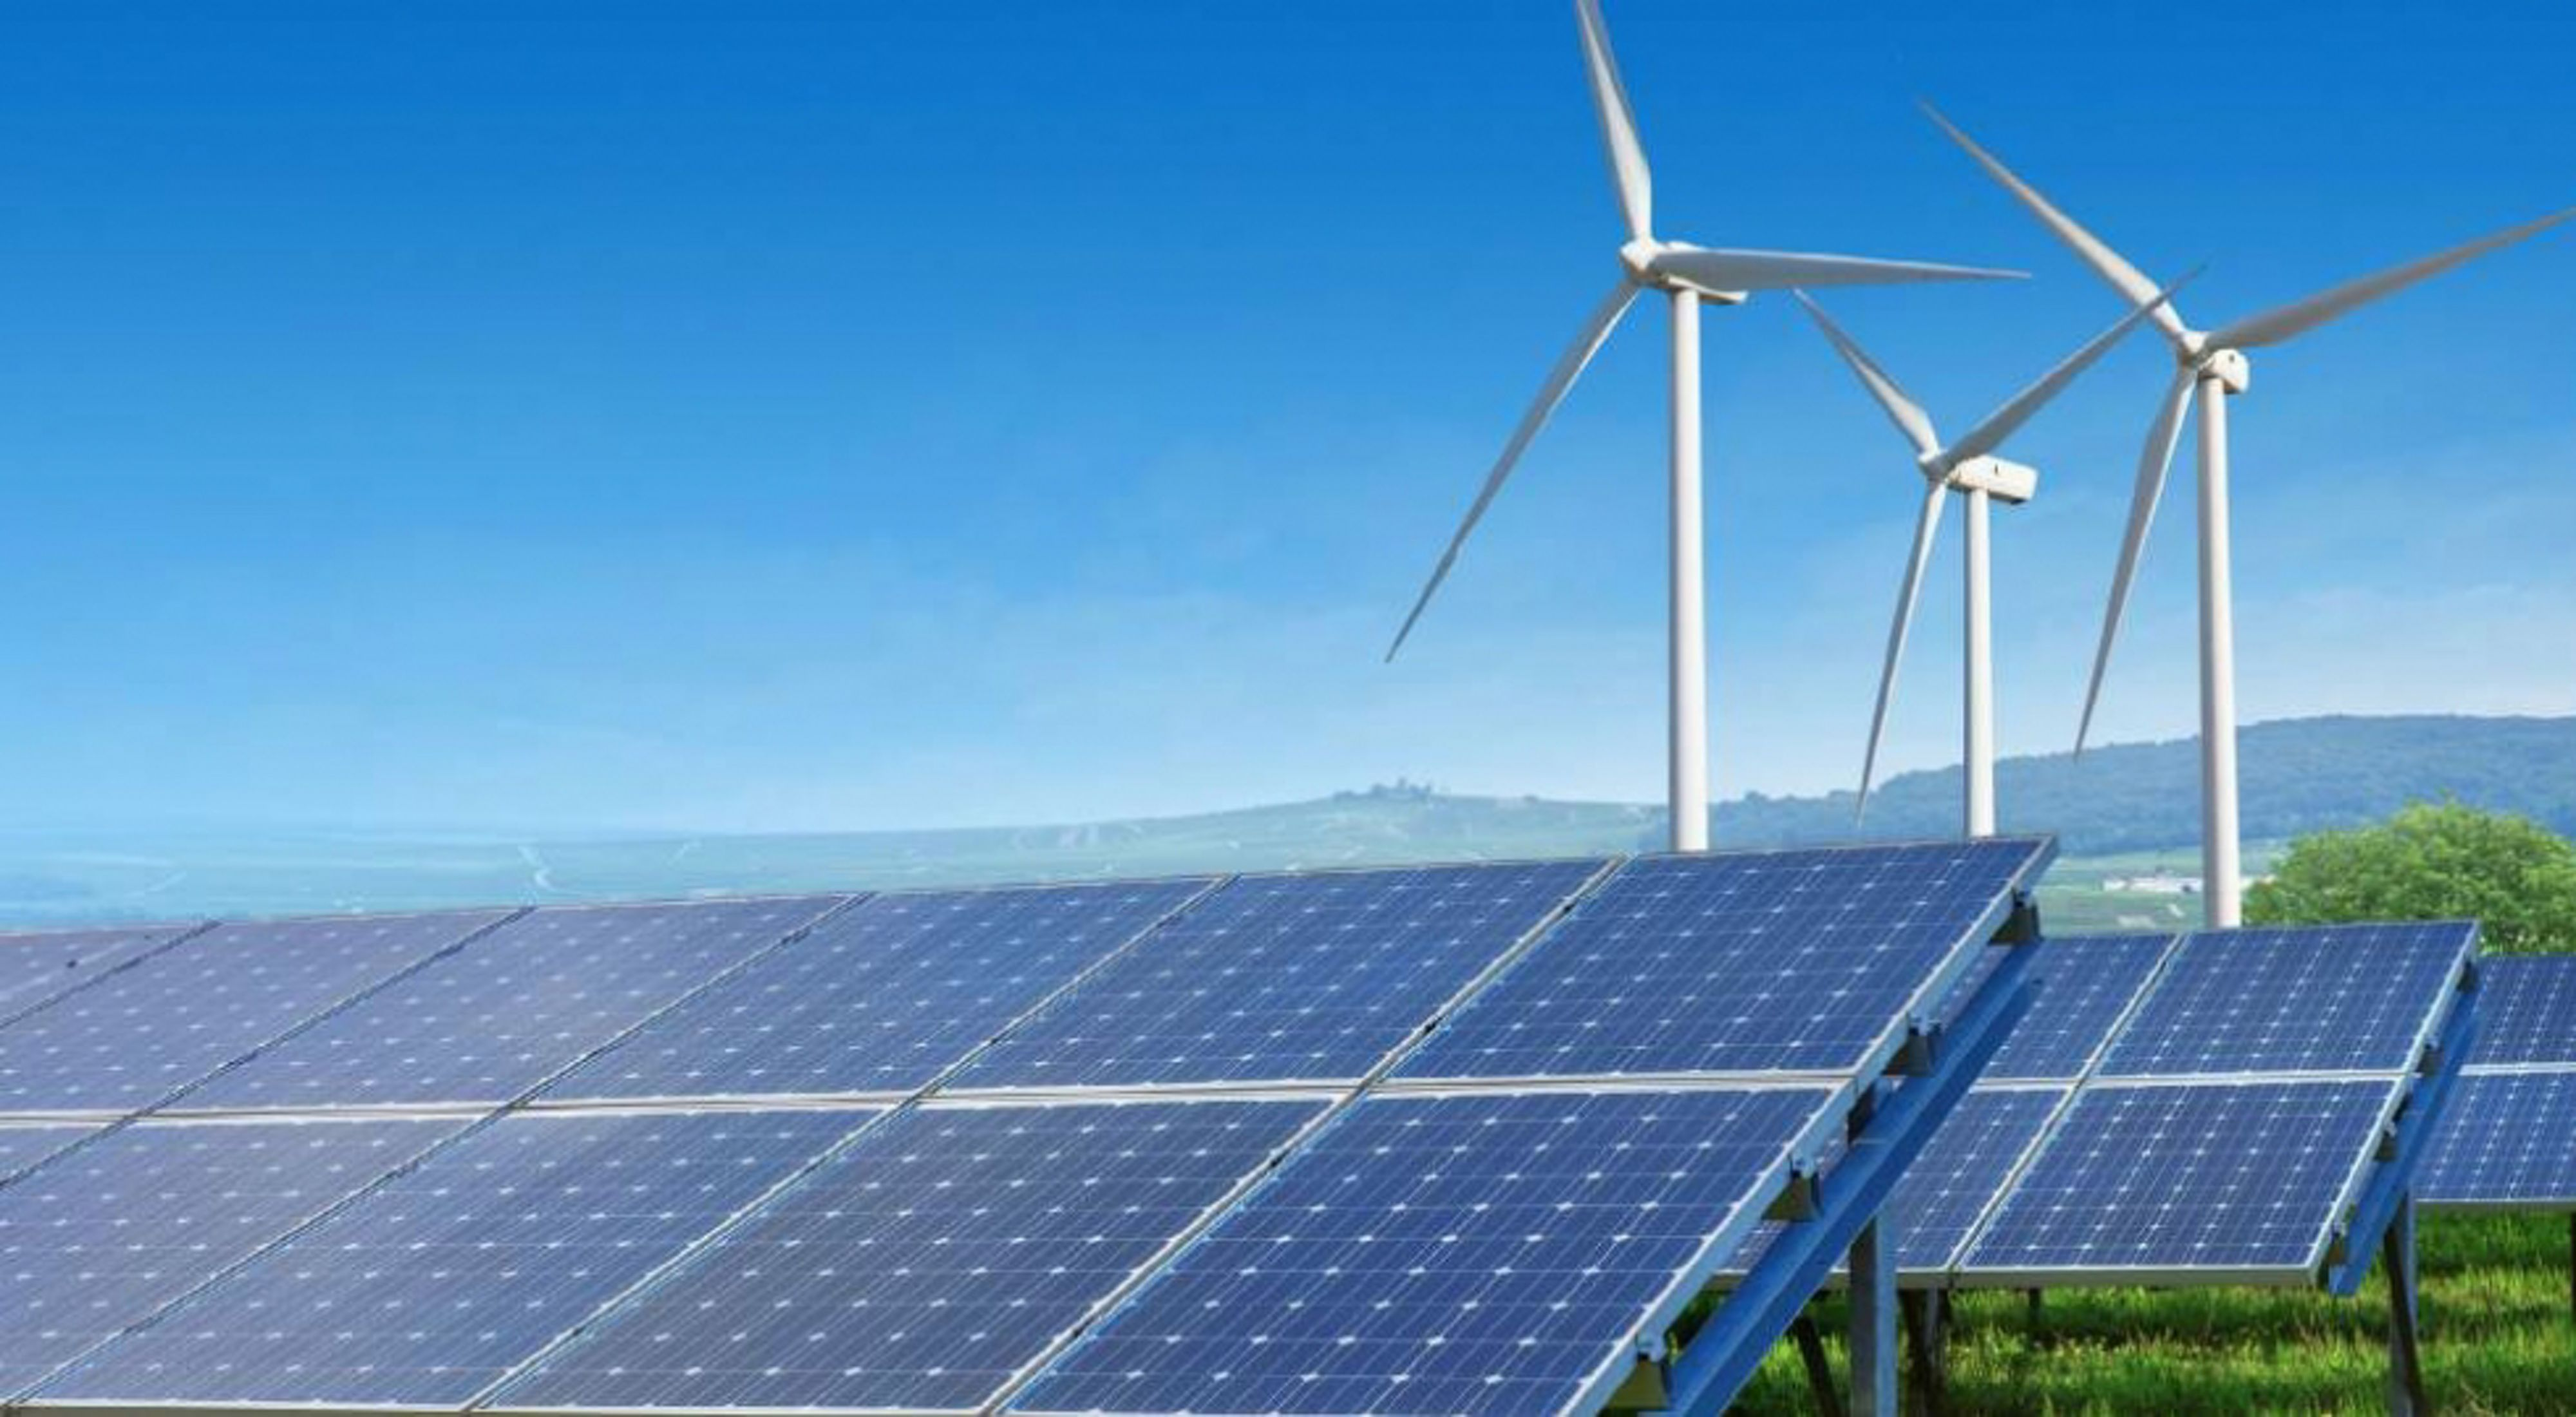 India aims to install 450 GW of renewable energy by 2030